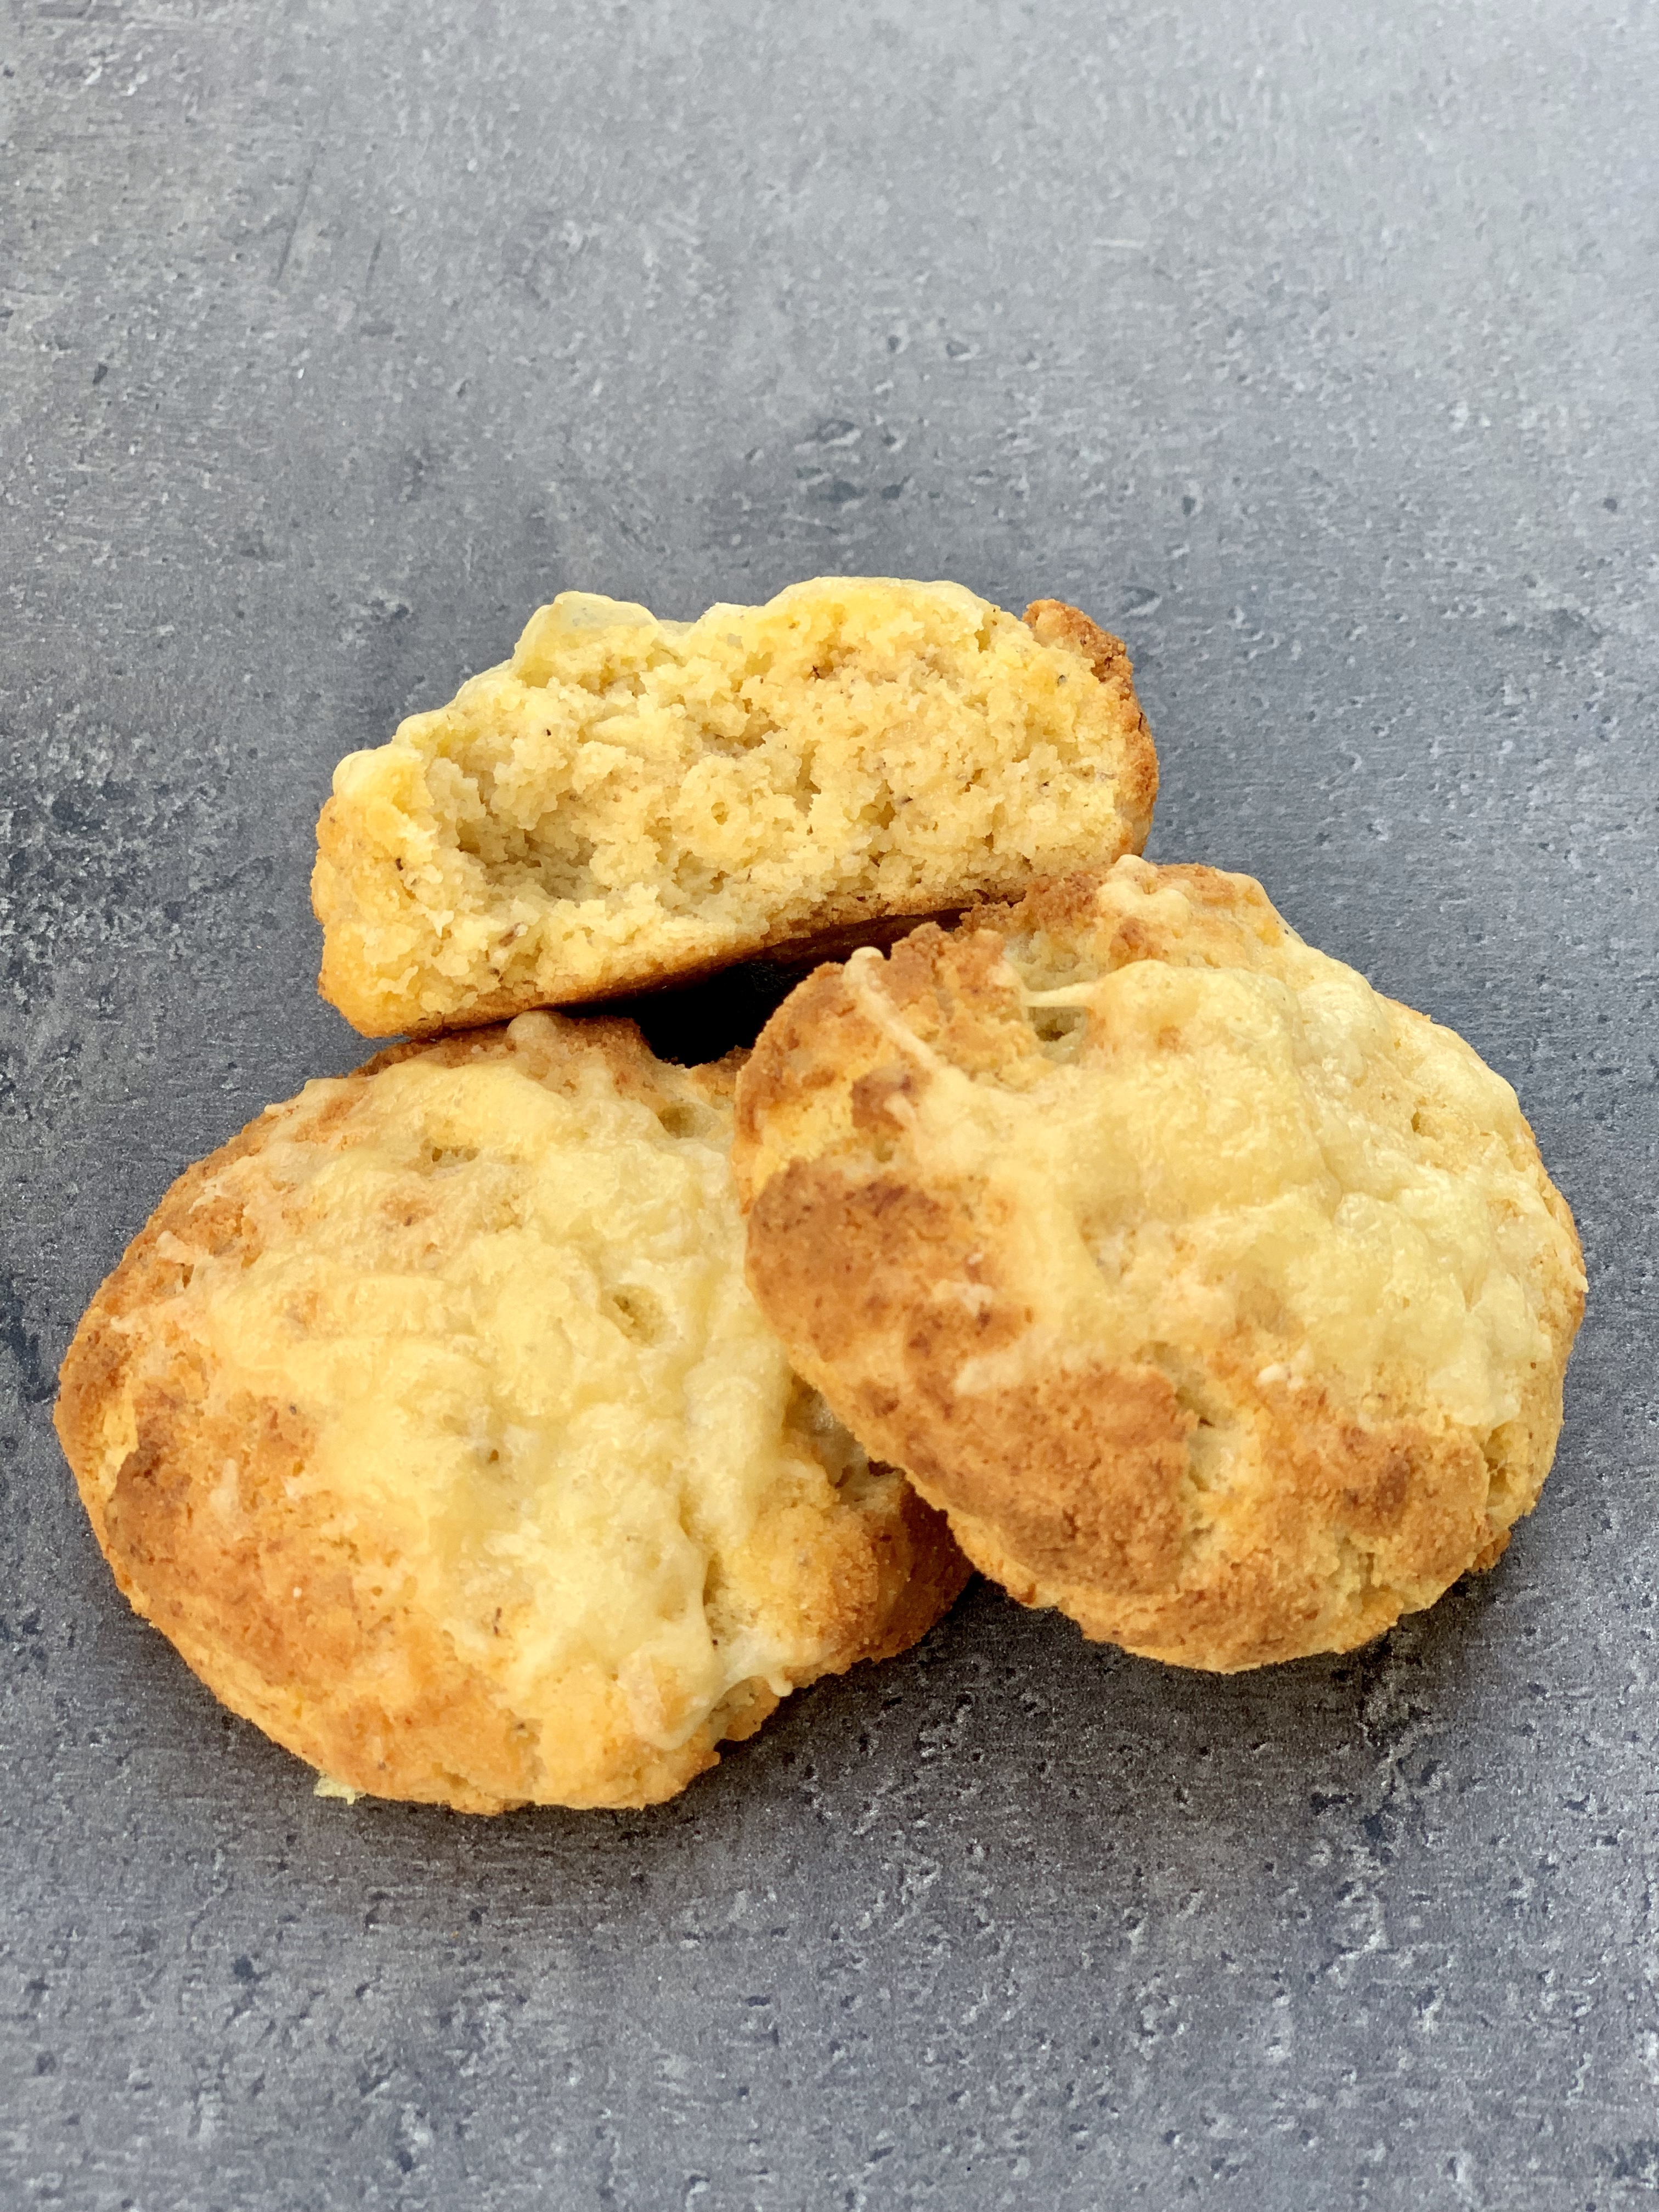 Picture of keto biscuits